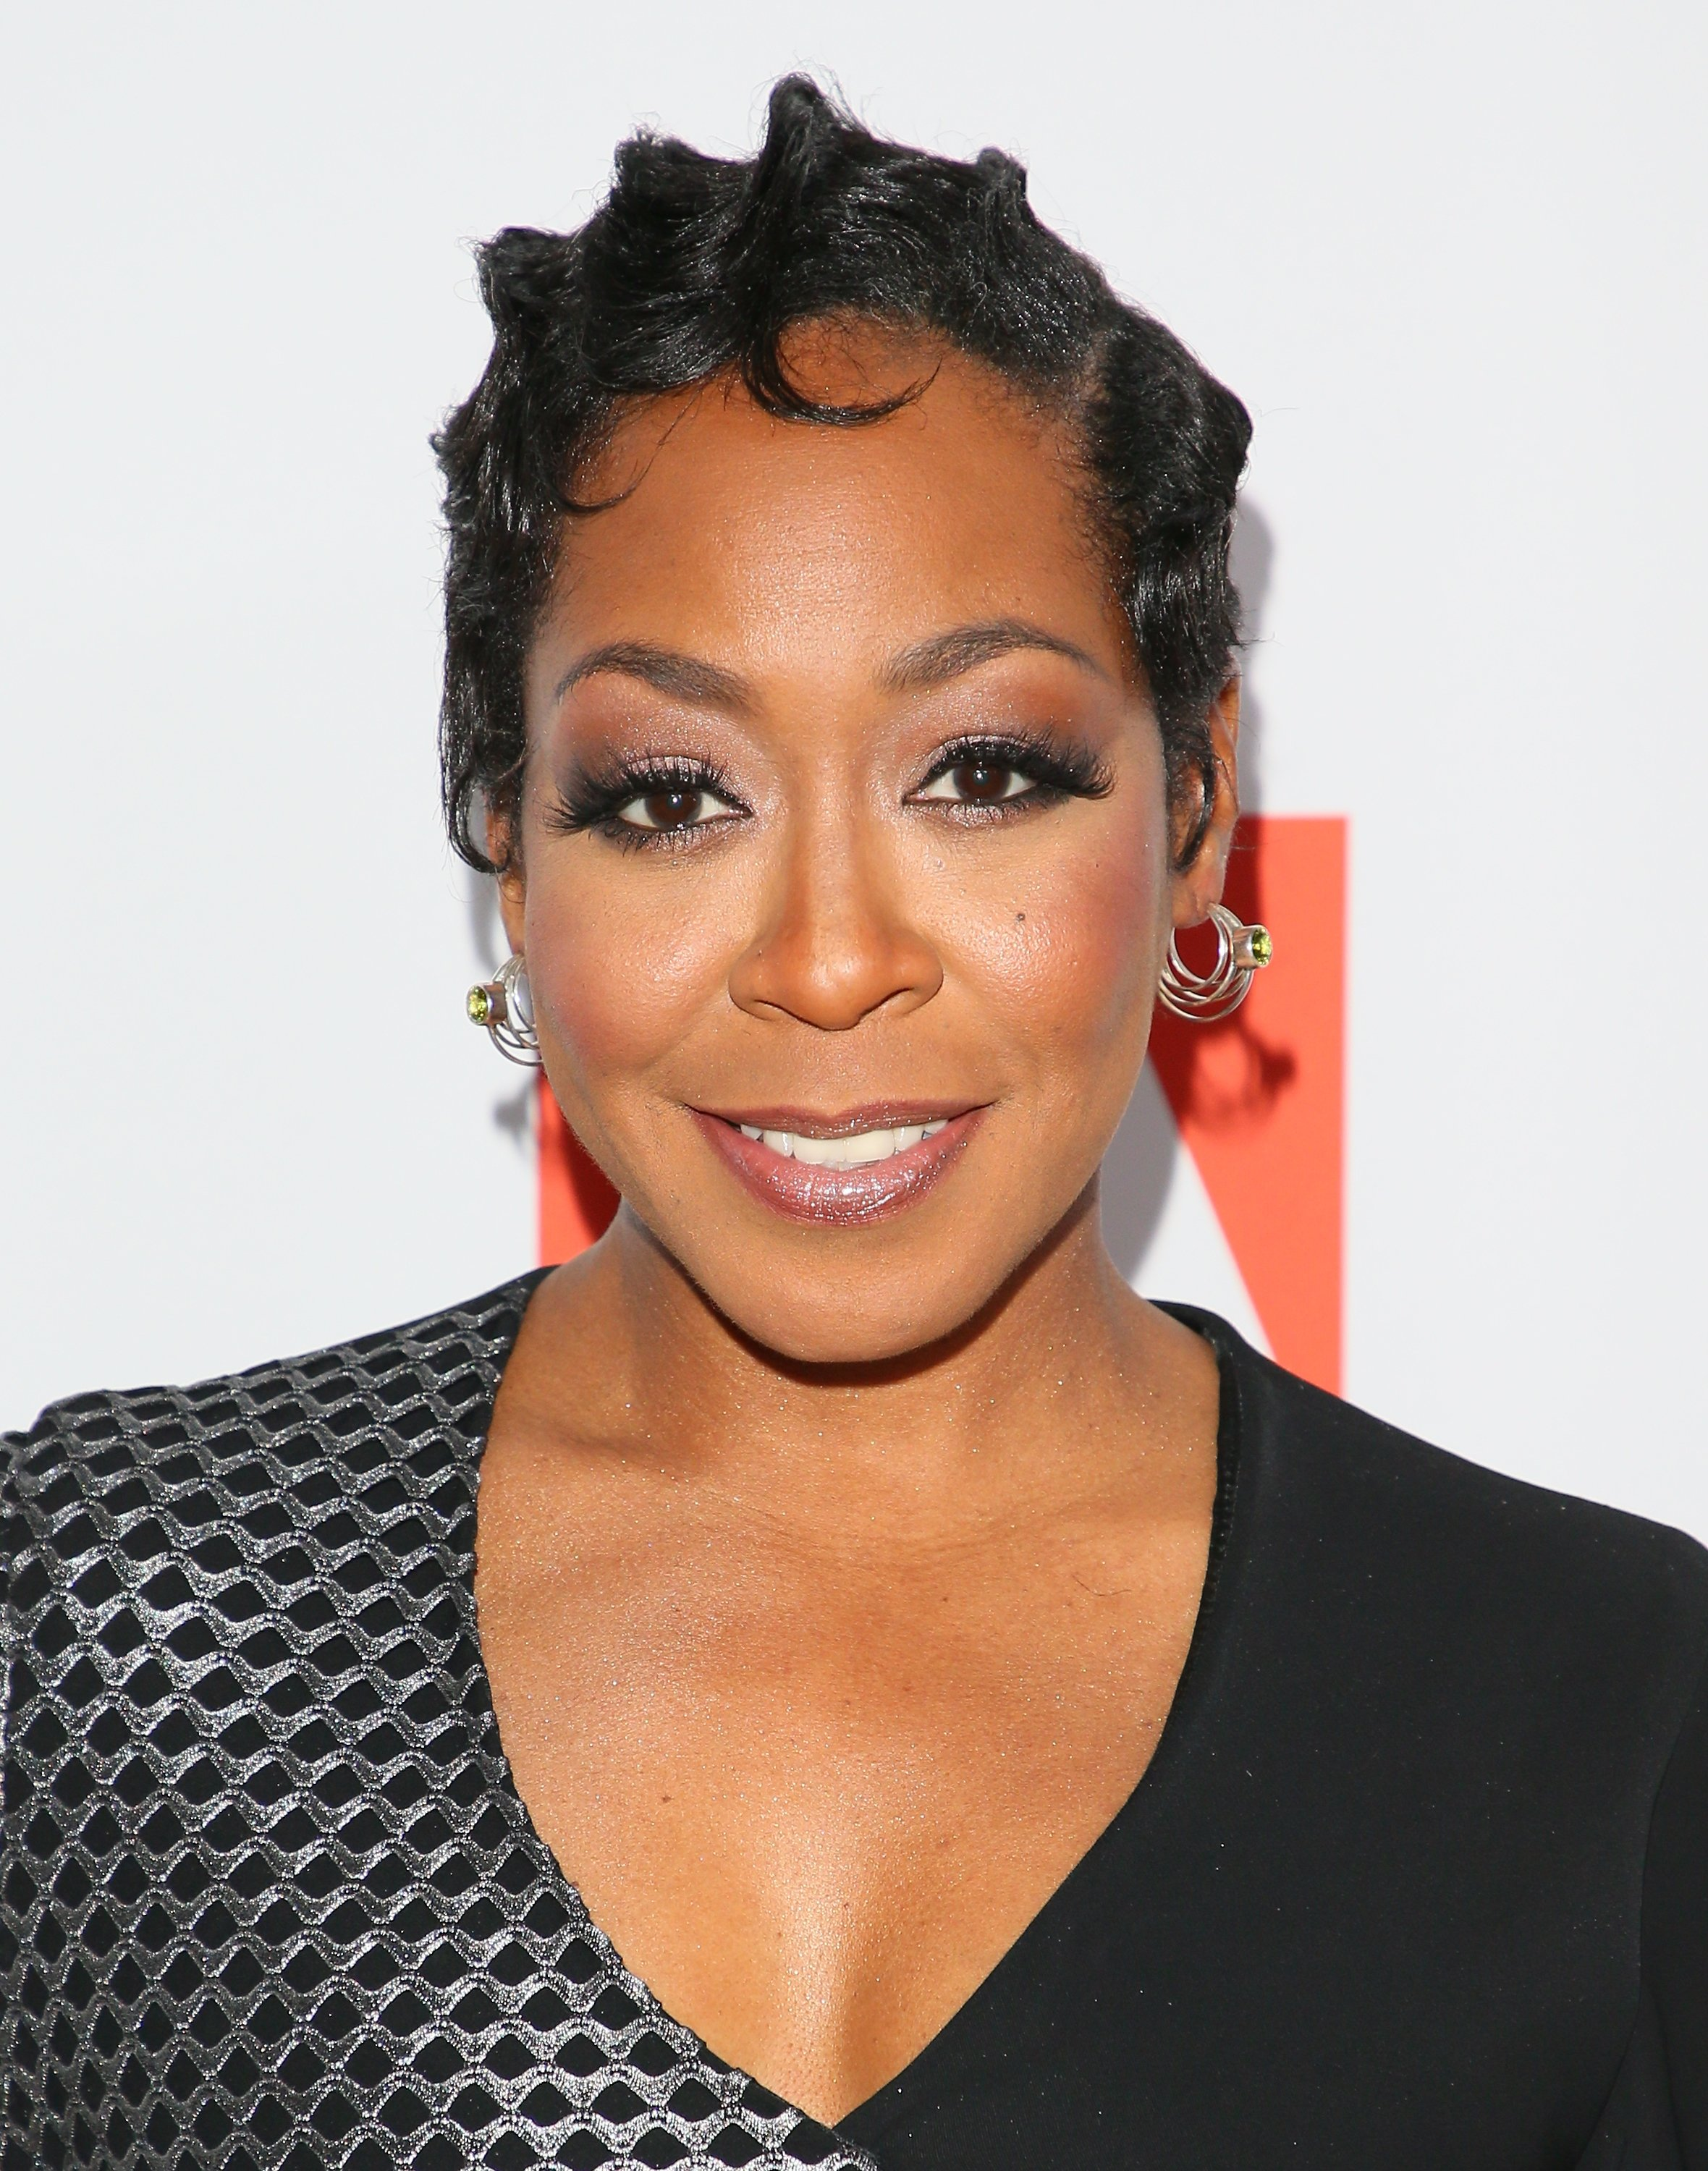 Tichina Arnold attends the 68th Annual ACE Eddie Awards on January 27, 2018 in Beverly Hills, California | Photo: GettyImages